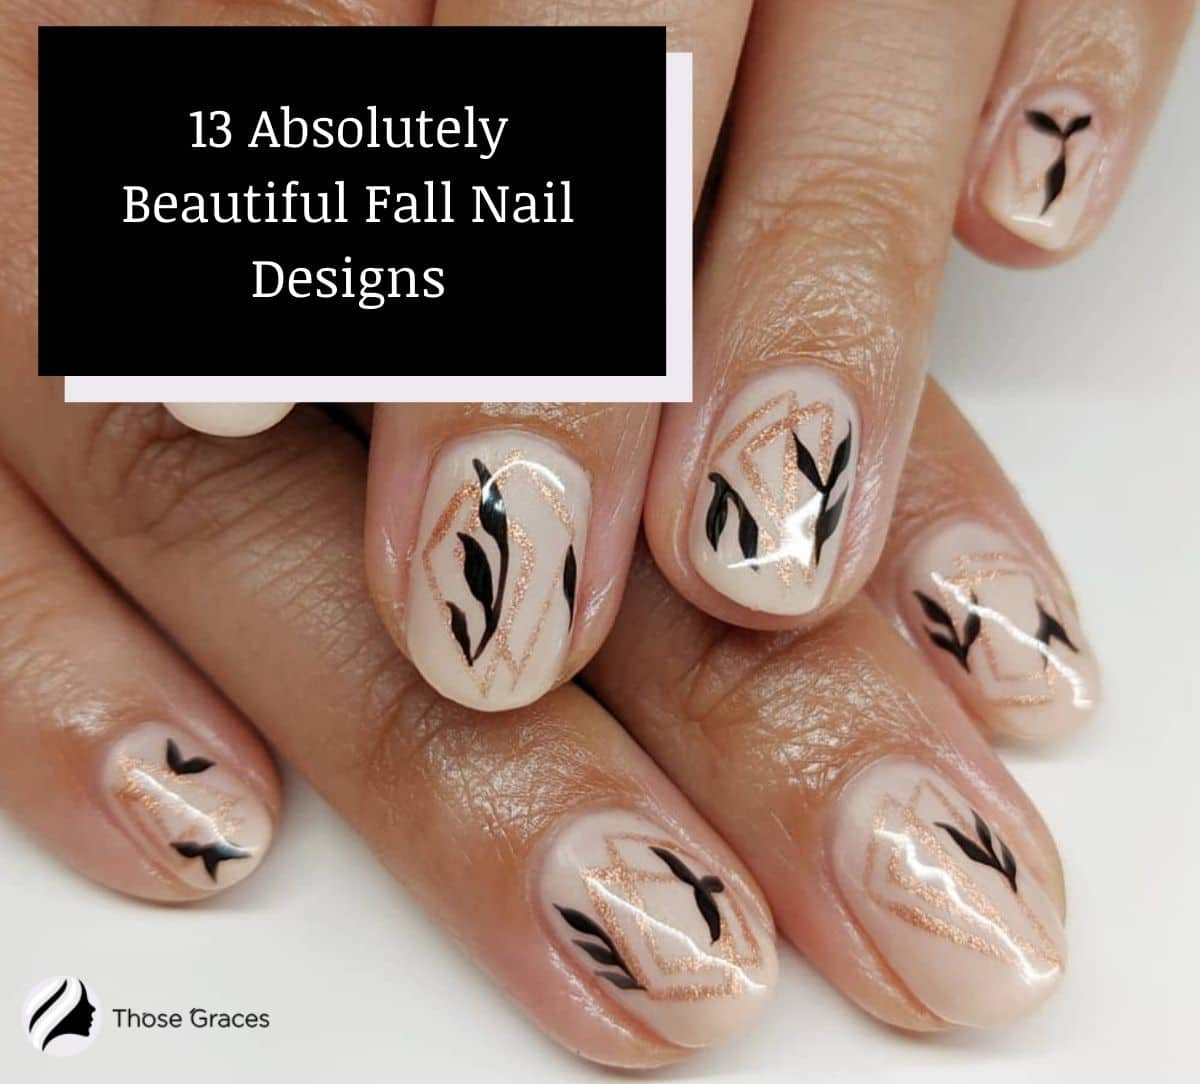 beautiful nails with black and glittery gold leaves design